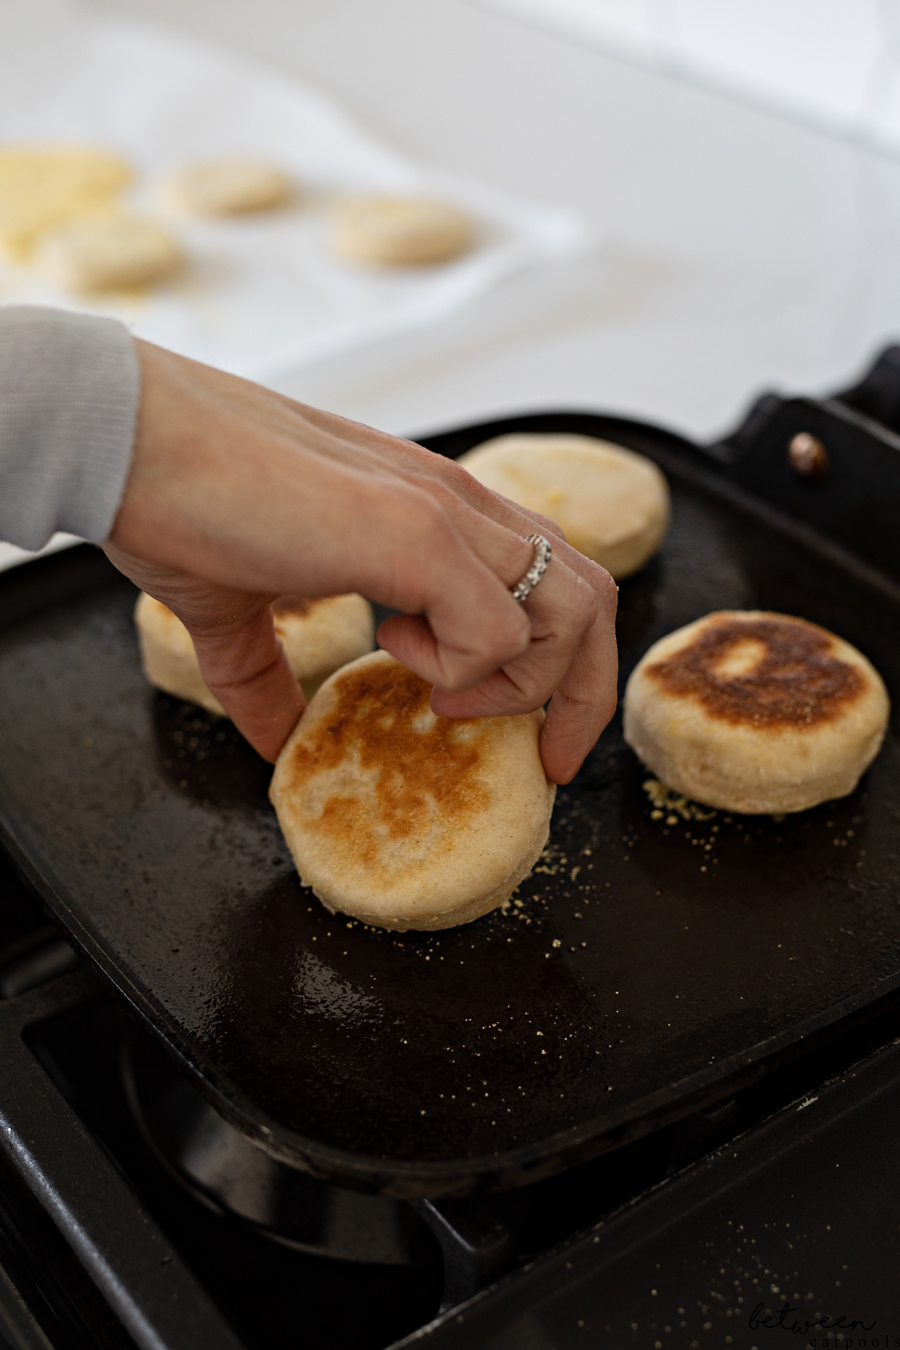 Do You Love English Muffins, Split Open and Toasted with Melted Butter? Then Click Here. Make your own English muffins...then sit down to enjoy 'em while they're hot.